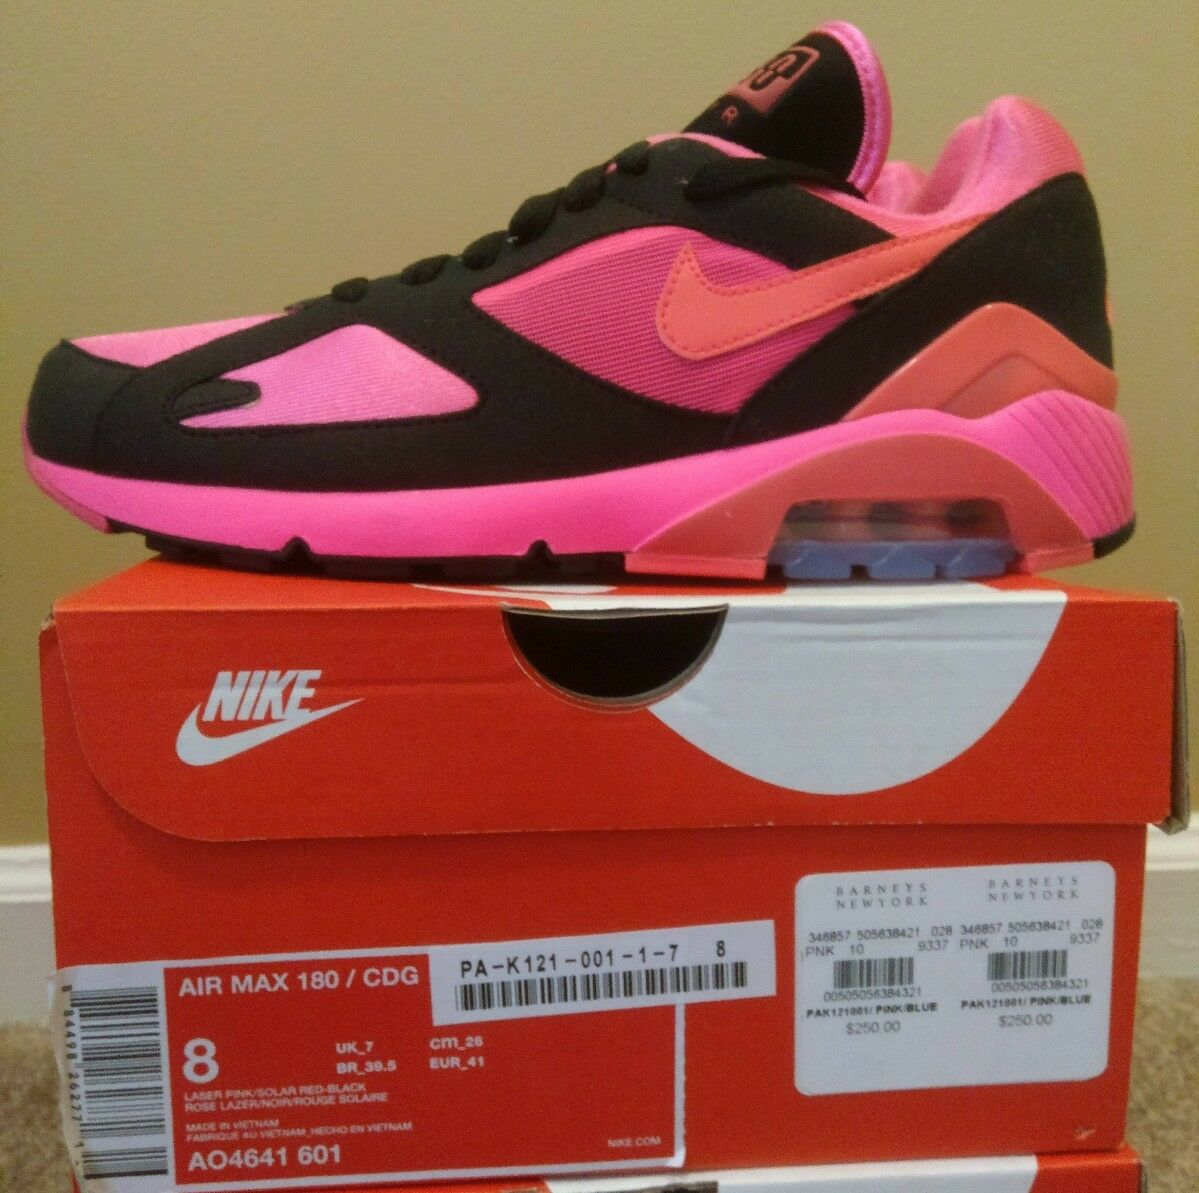 Nike Air Max 180 CDG  Comme des Garcons  US 8 AO4641 601 Black Pink Solar Red